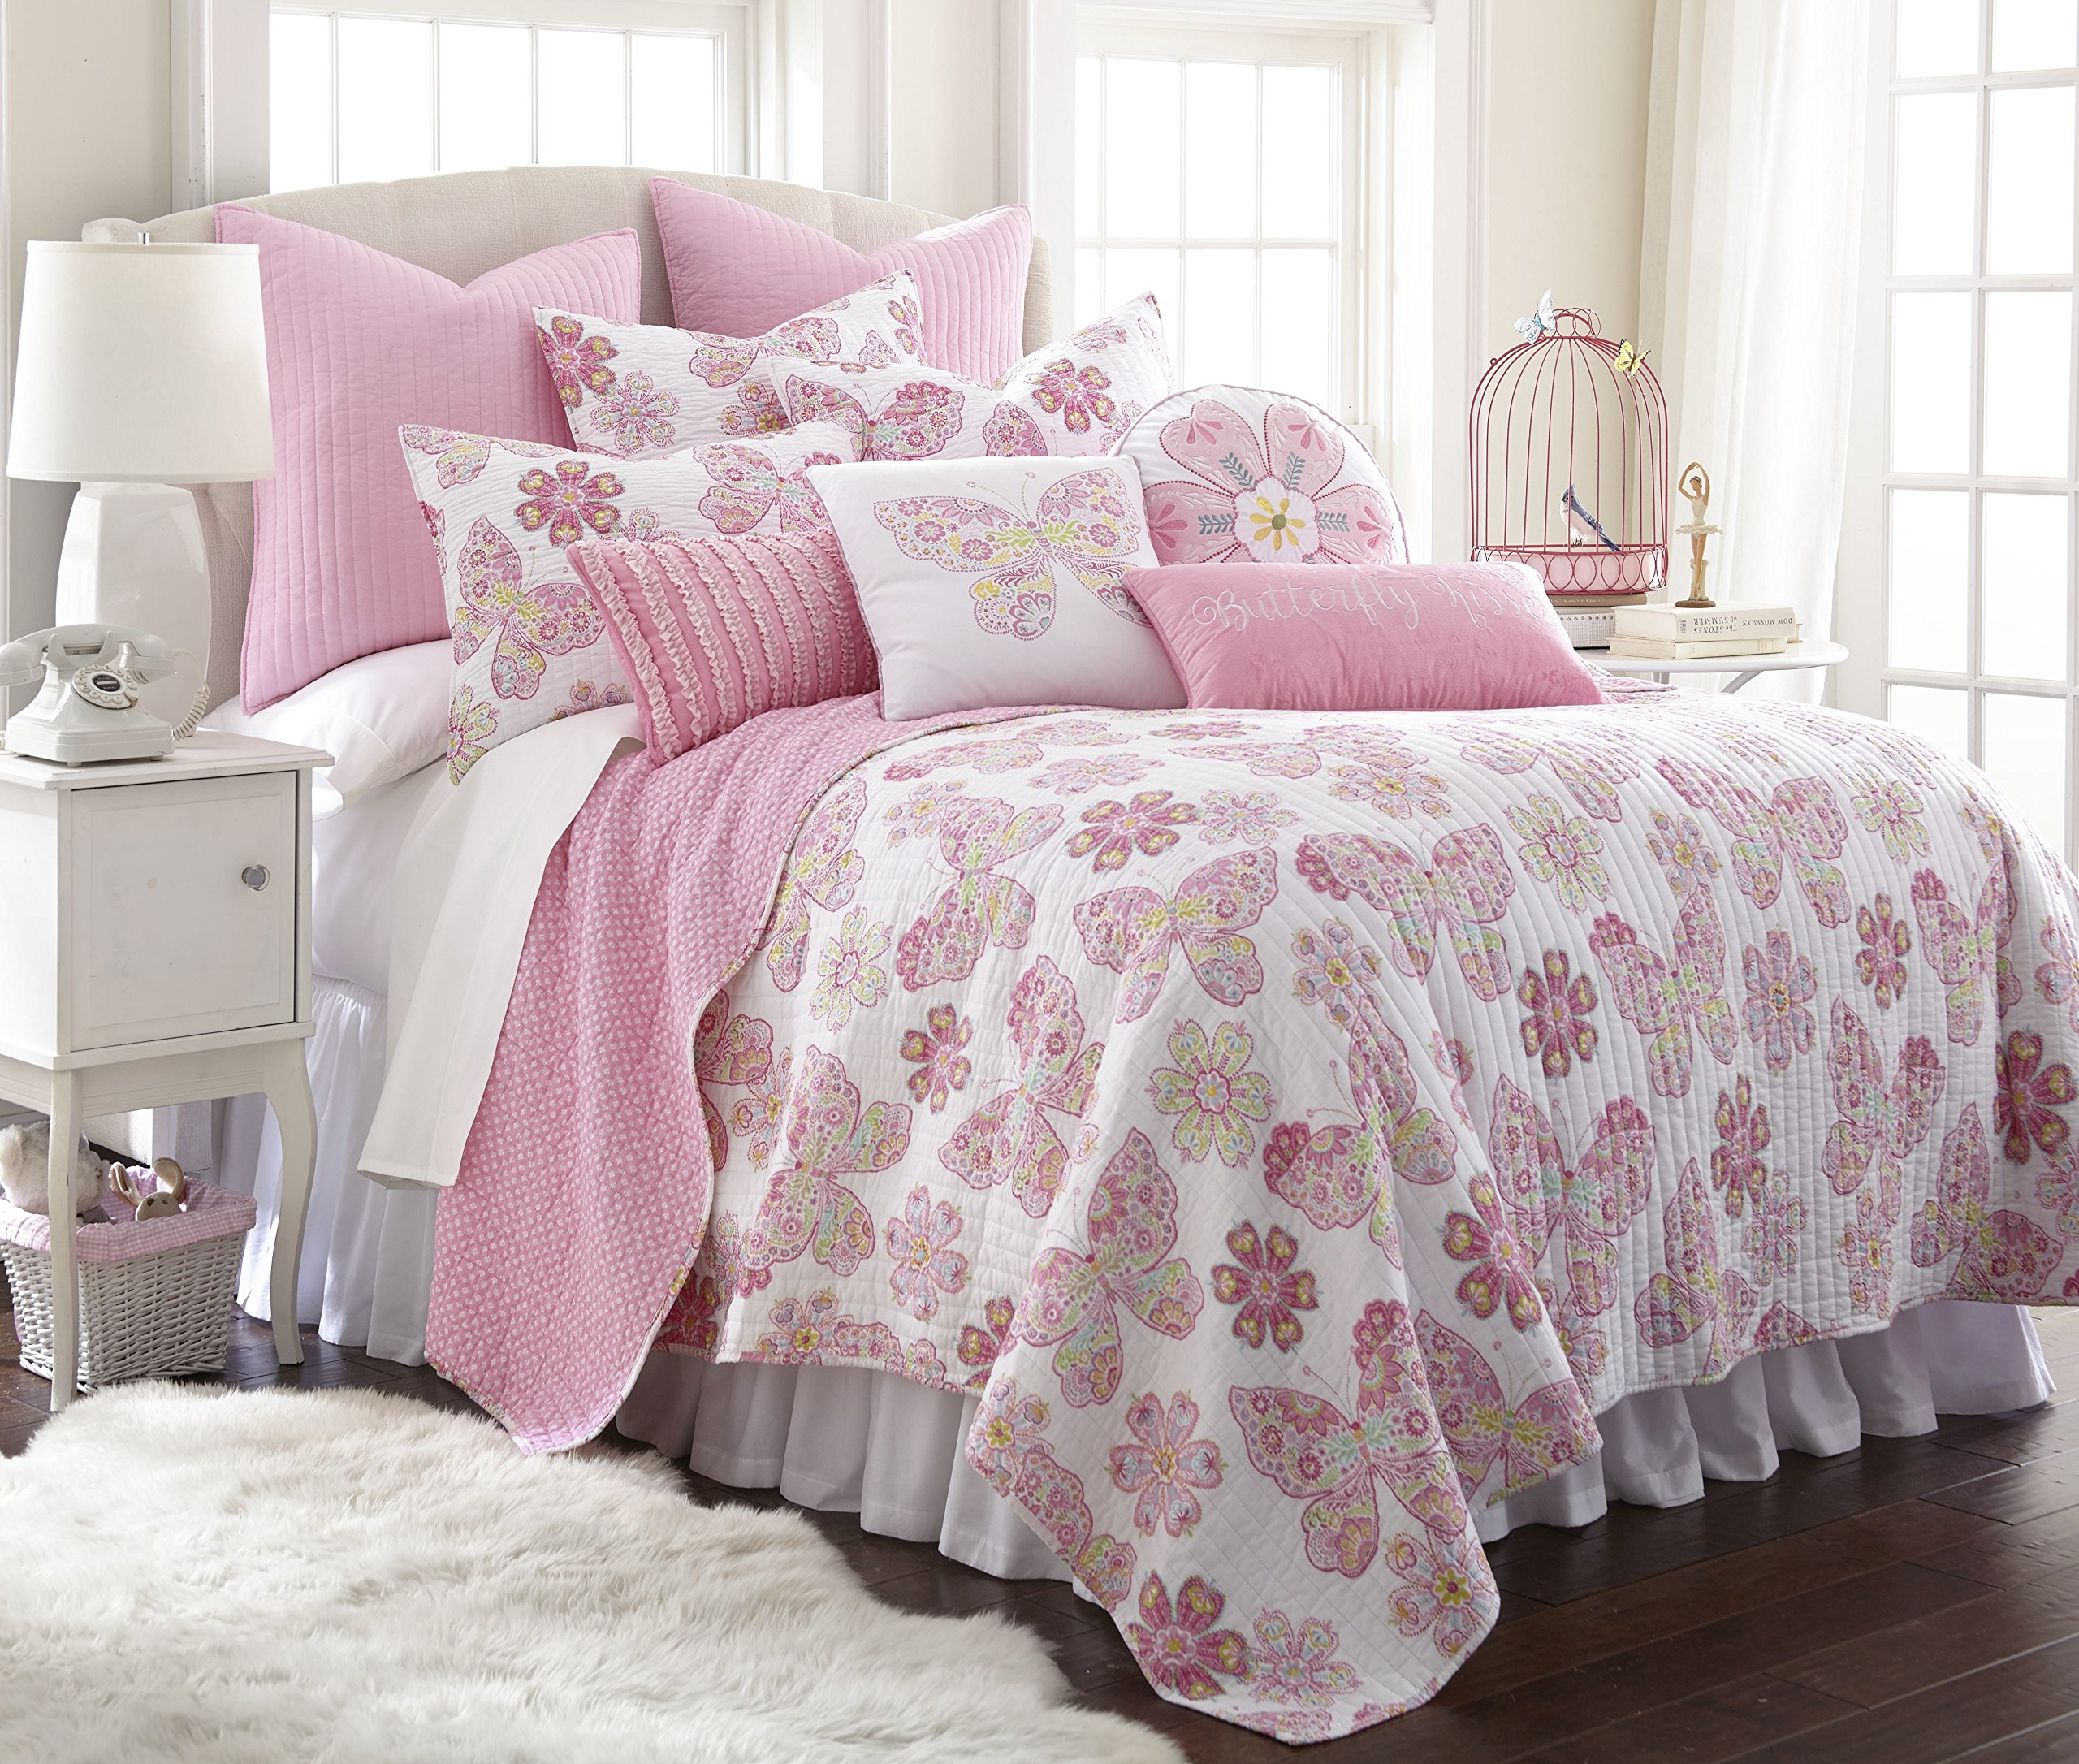 Kama Full/Queen Cotton Quilt Set, Pink by Levtex (Image #1)